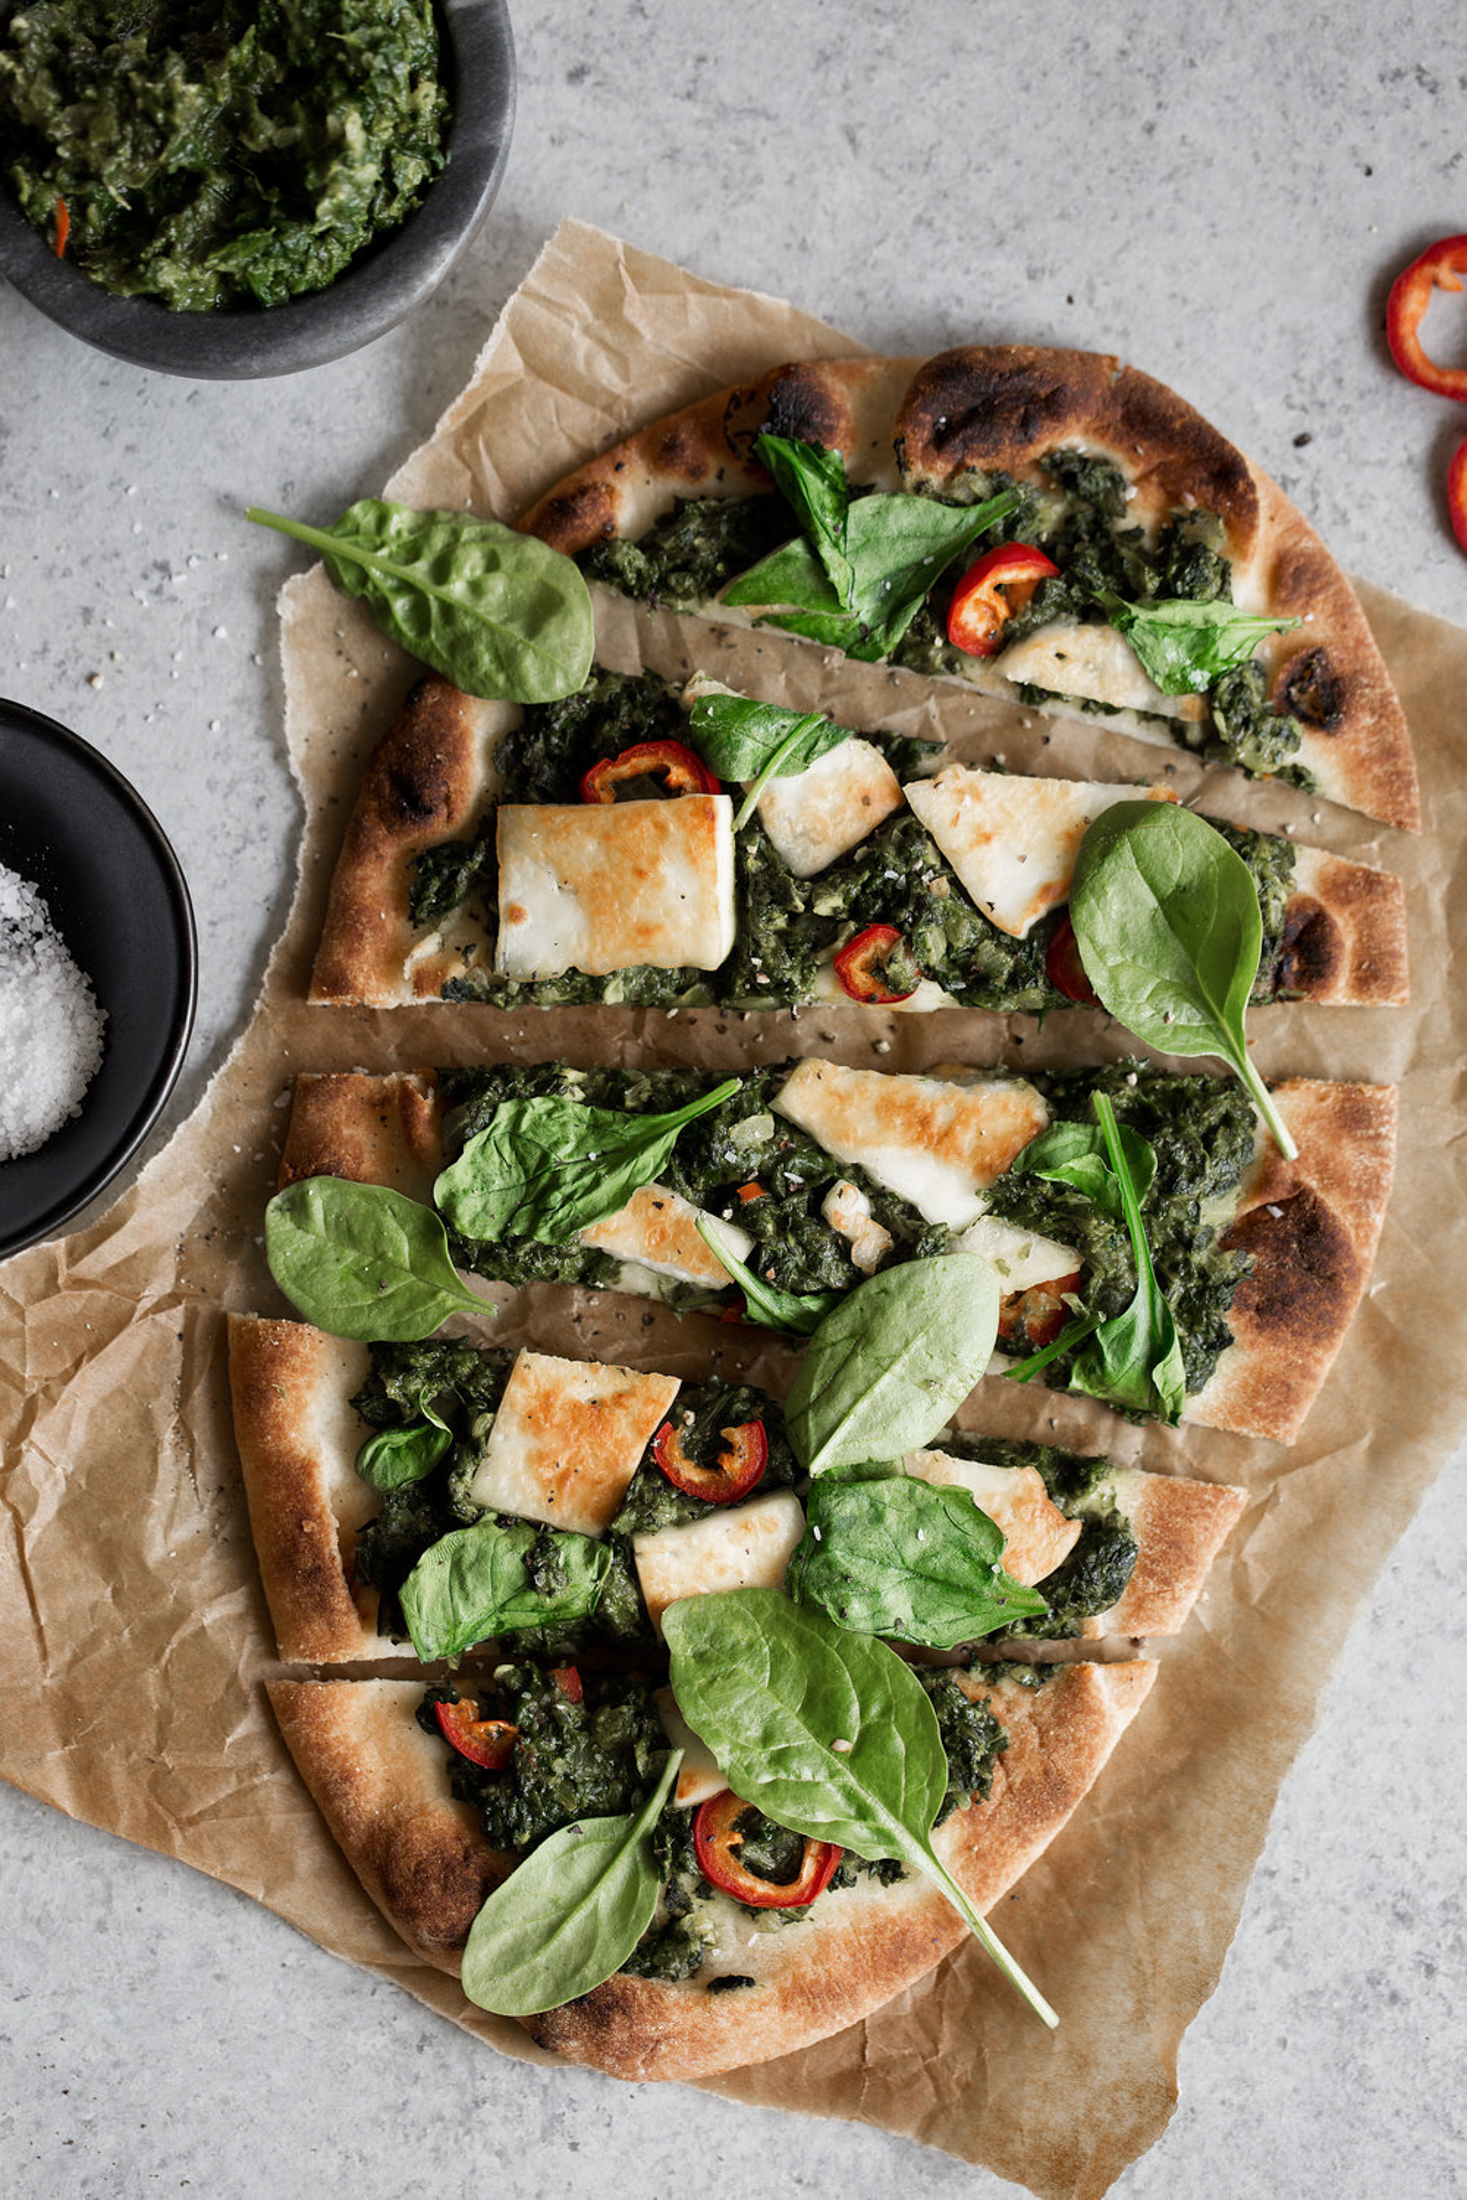 saag paneer naan pizza recipe from cooking with cocktail rings